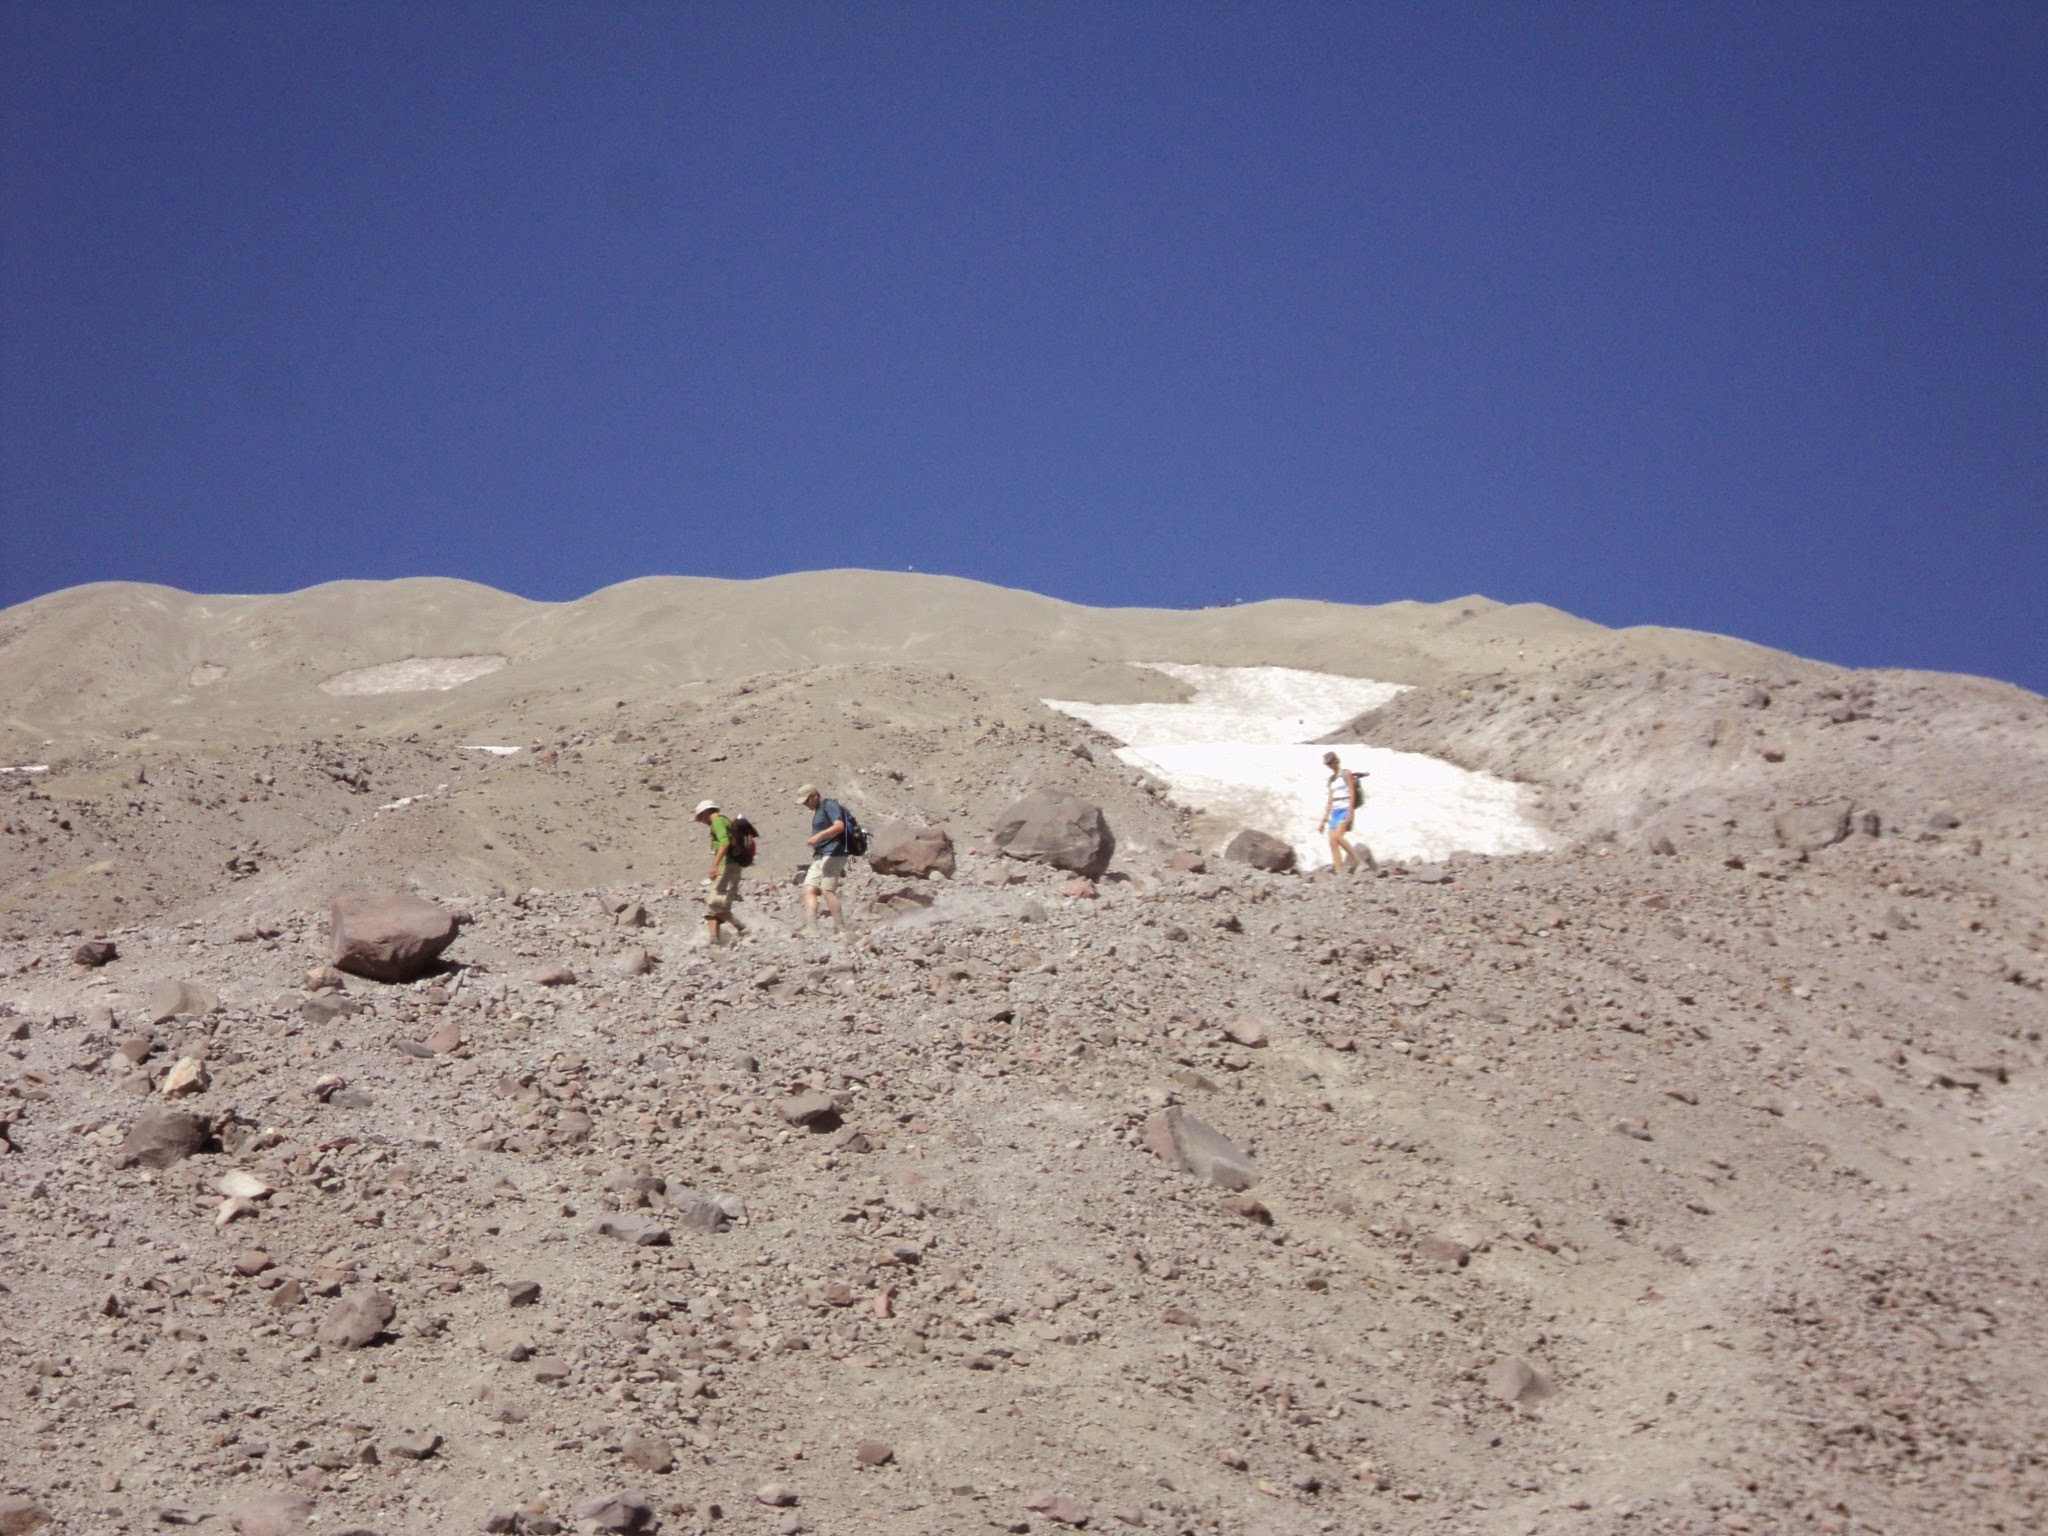 Volcanic gray sand at the top of a mountain. Three hikers walking across it. Snowfield and blue sky in the distance